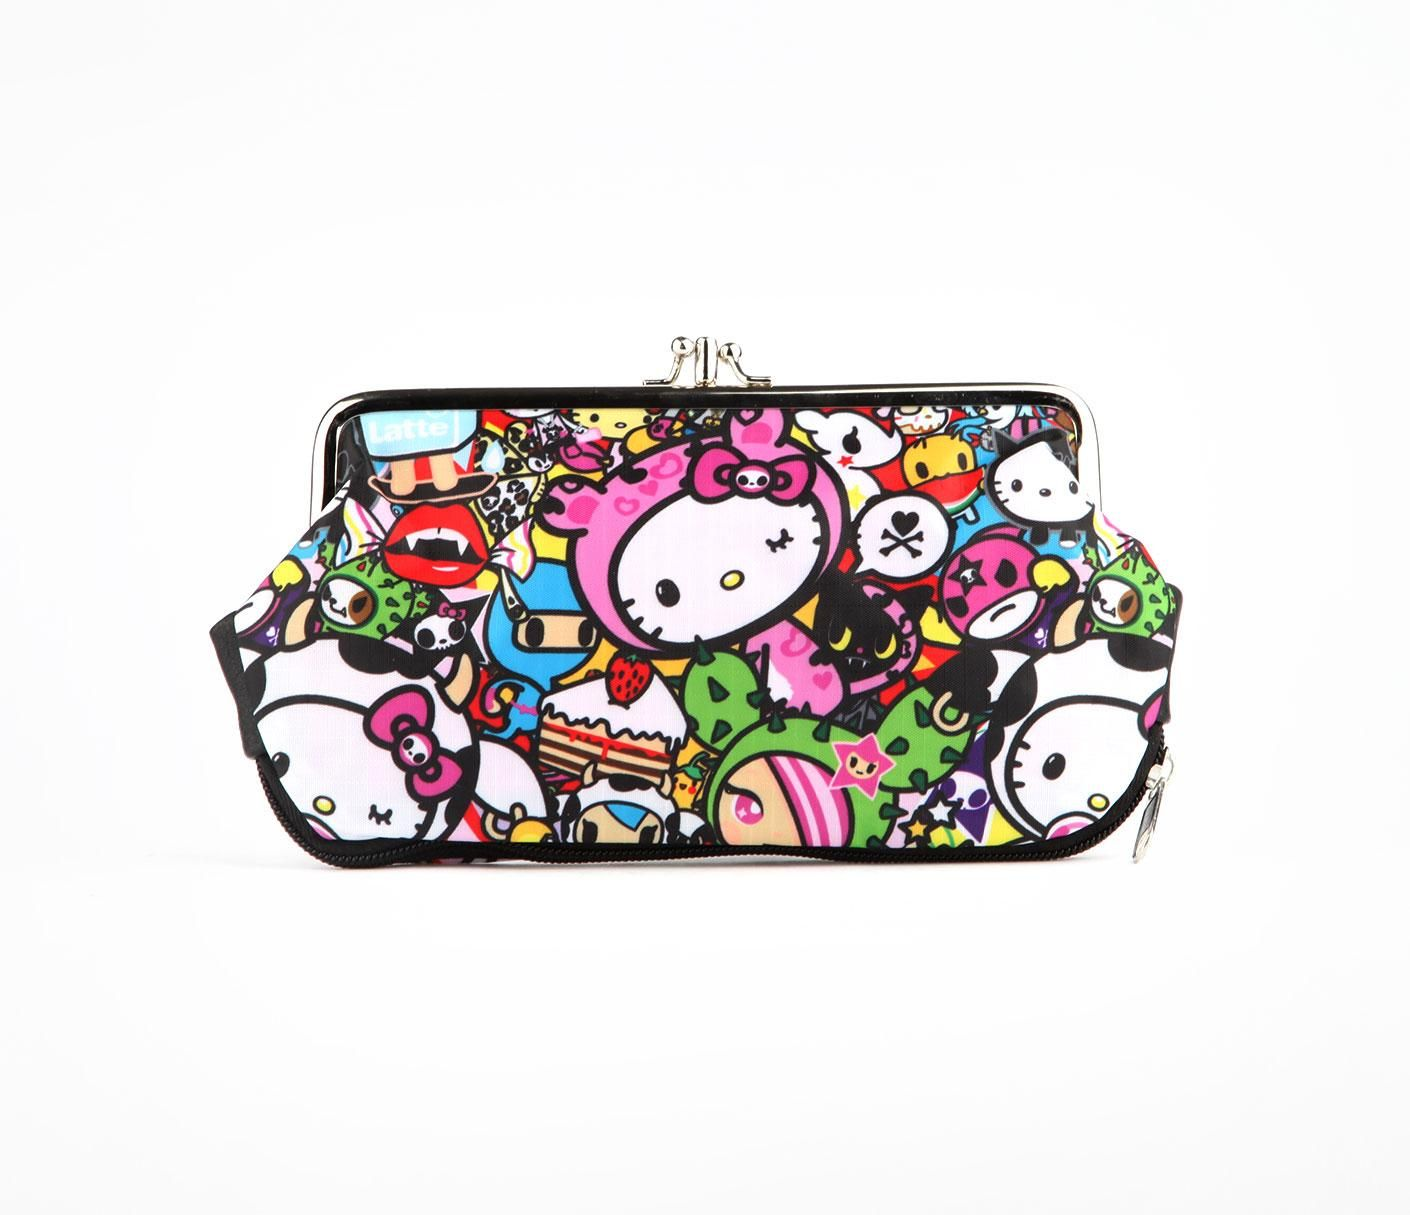 6b2340b19cb tokidoki x Hello Kitty Kisslock Wallet  Reunion   HeLlo KiTty ...